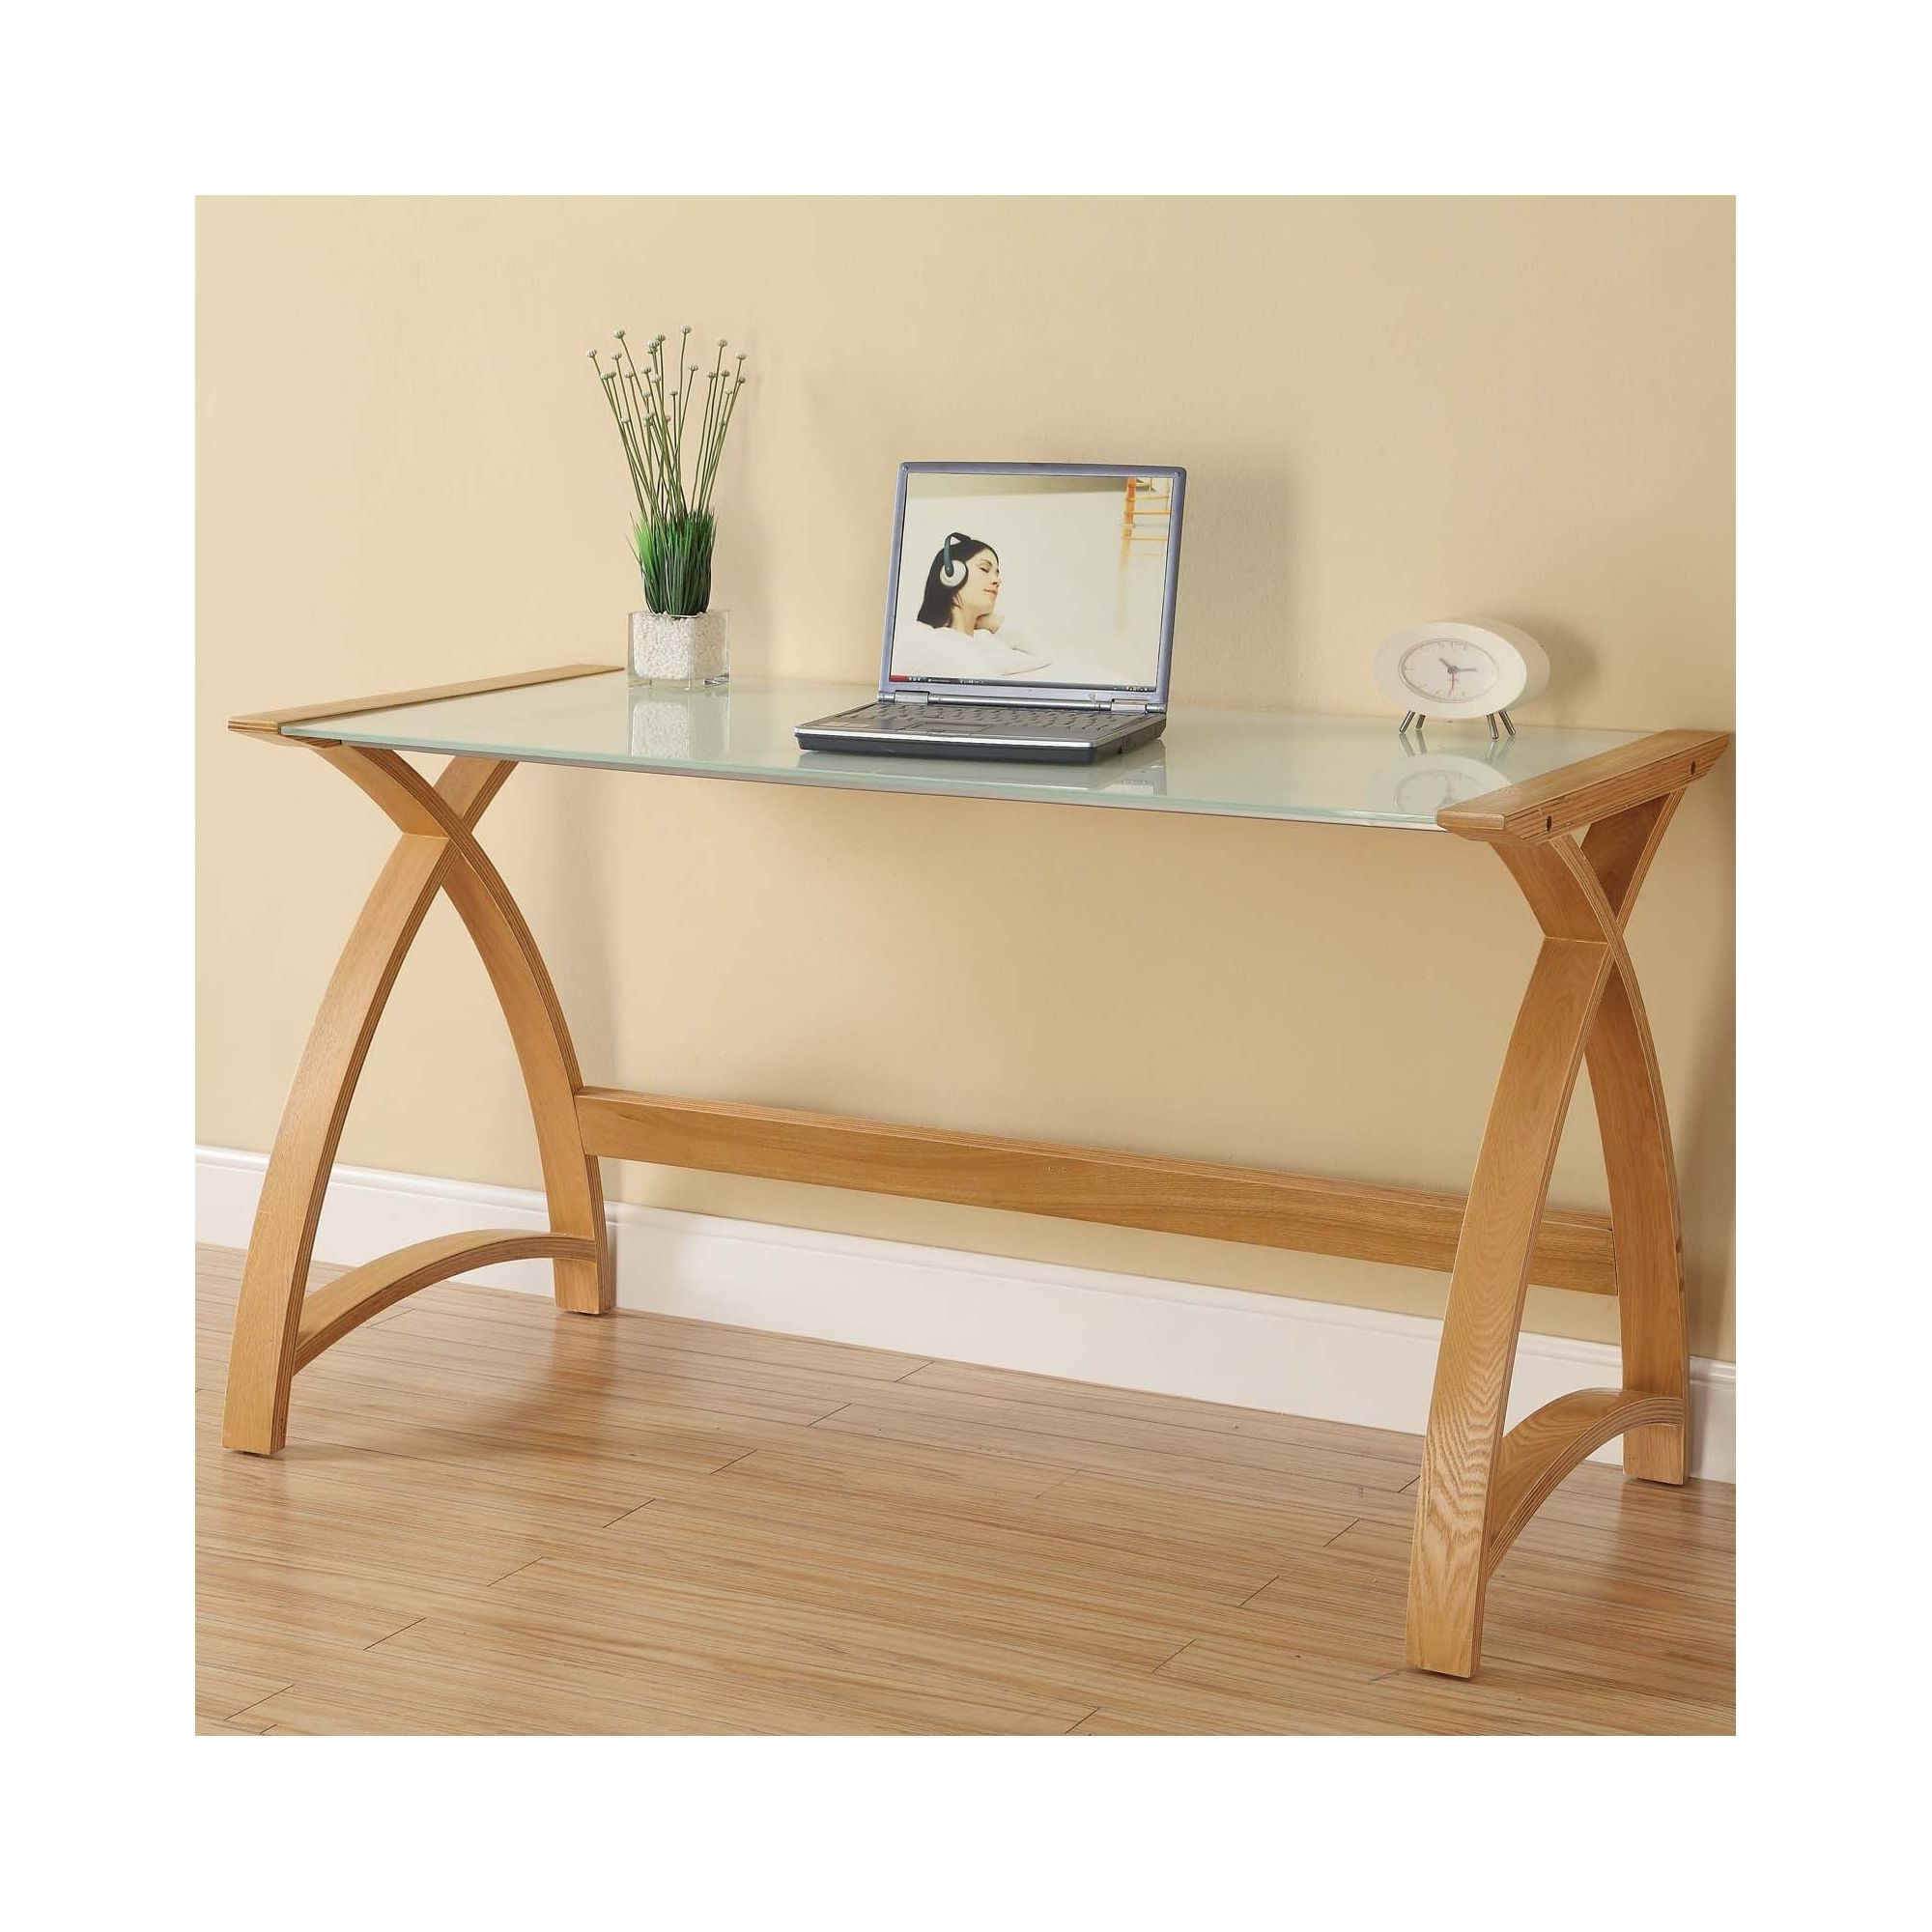 Jual Furnishings Ltd Curve Laptop / Work Table in Oak and White Glass at Tesco Direct